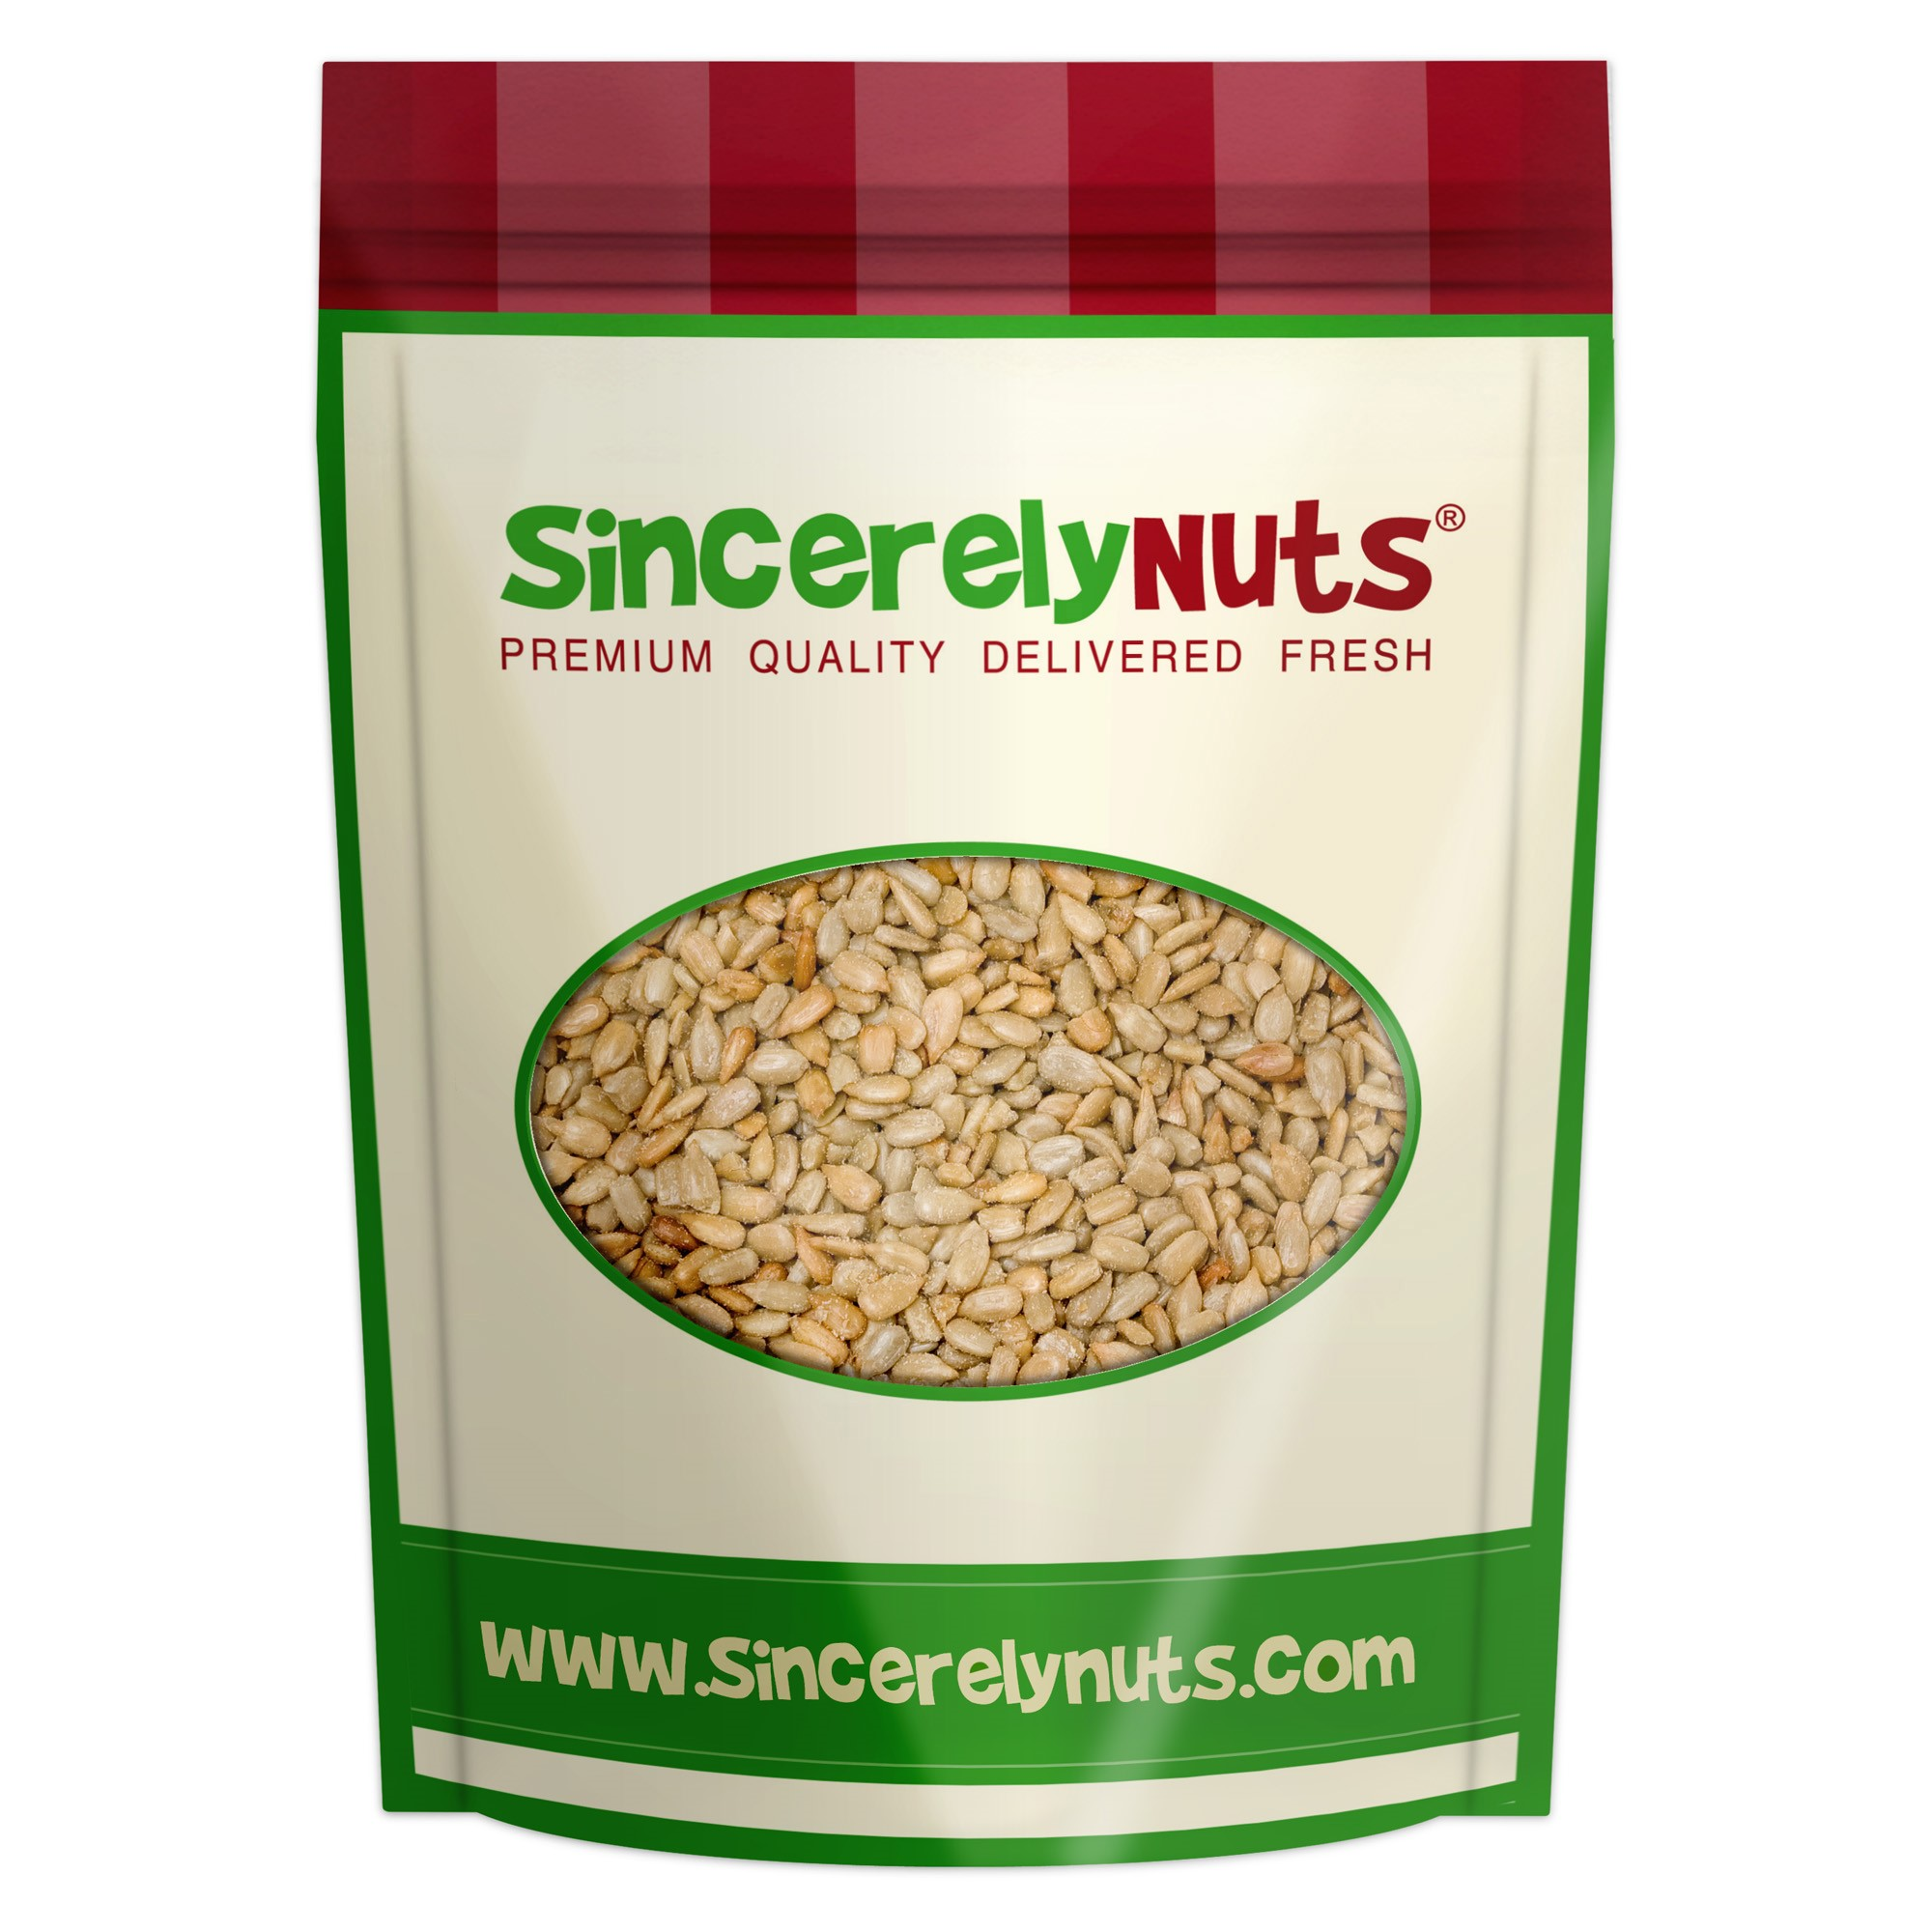 Sincerely Nuts Sunflower Seeds, Roasted and Salted, No Shell, 1 Lb